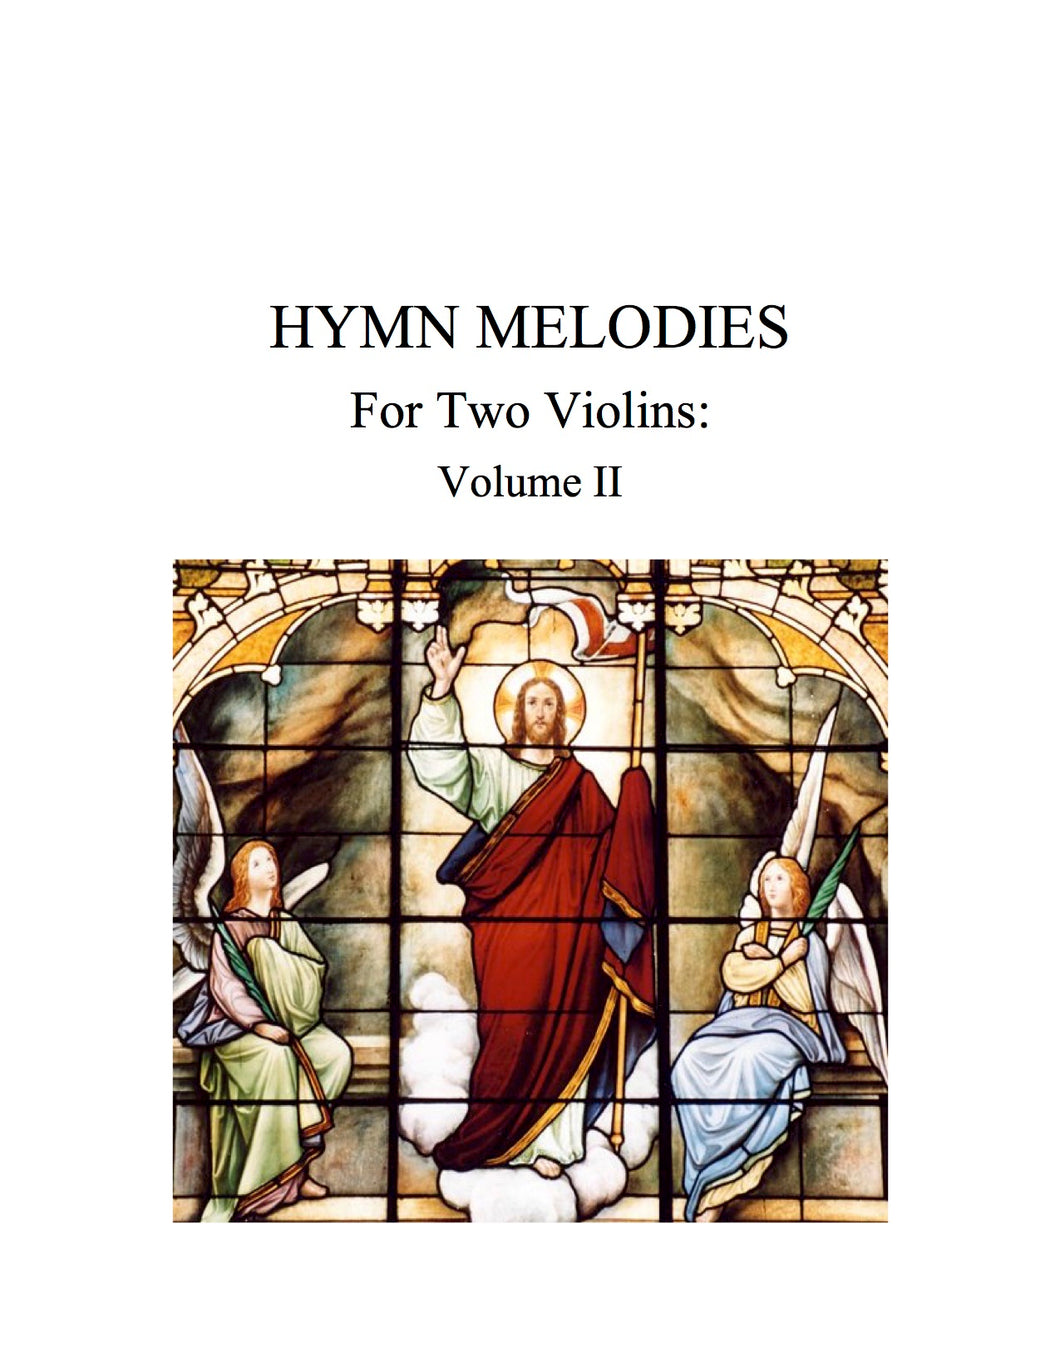 068 - Hymn Melodies For Two Violins, Volume II